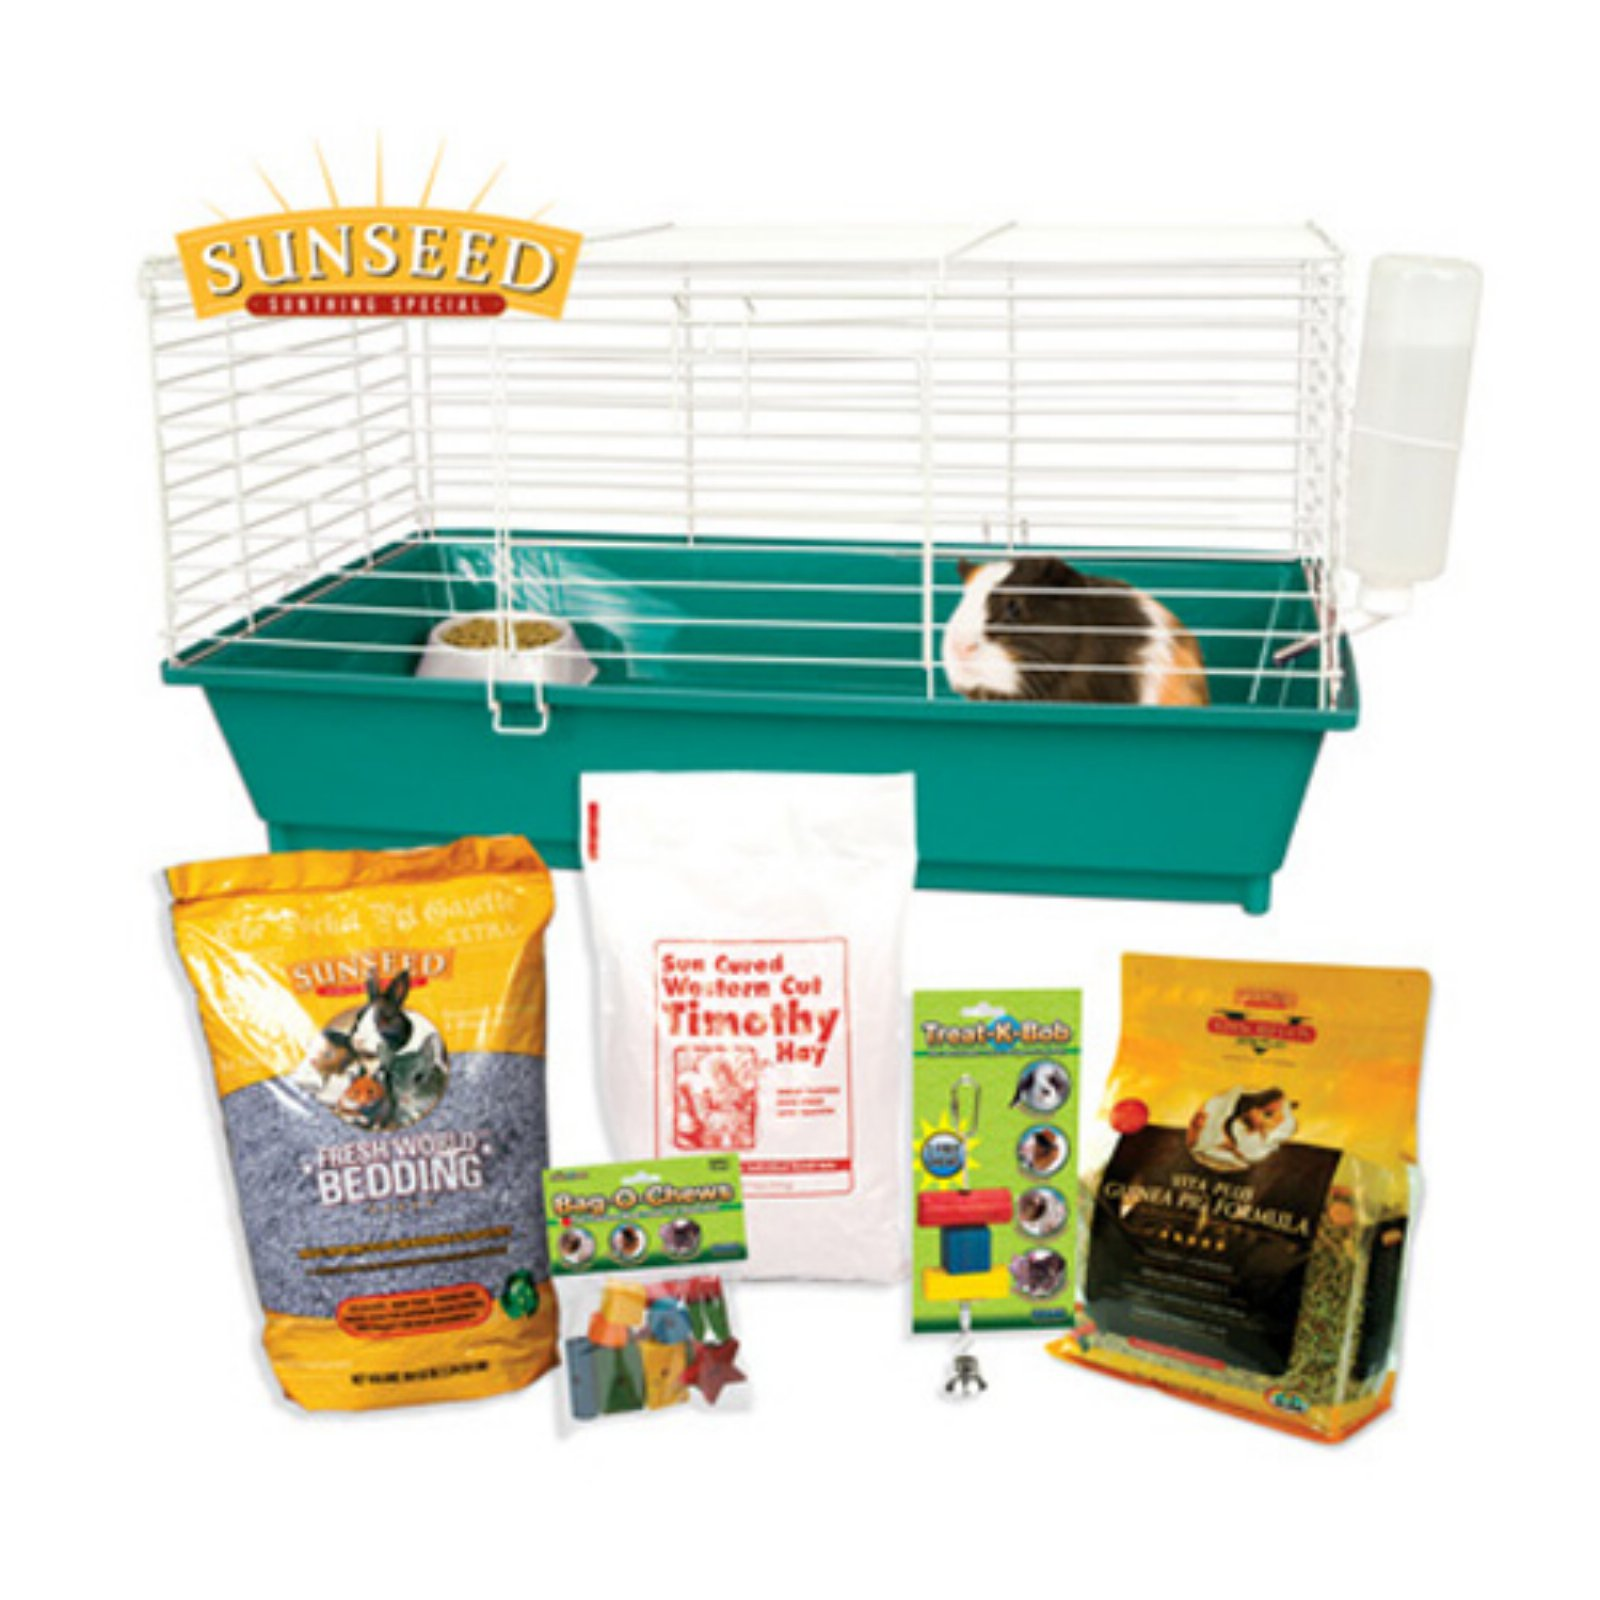 Ware Sunseed Guinea Pig Care Kit